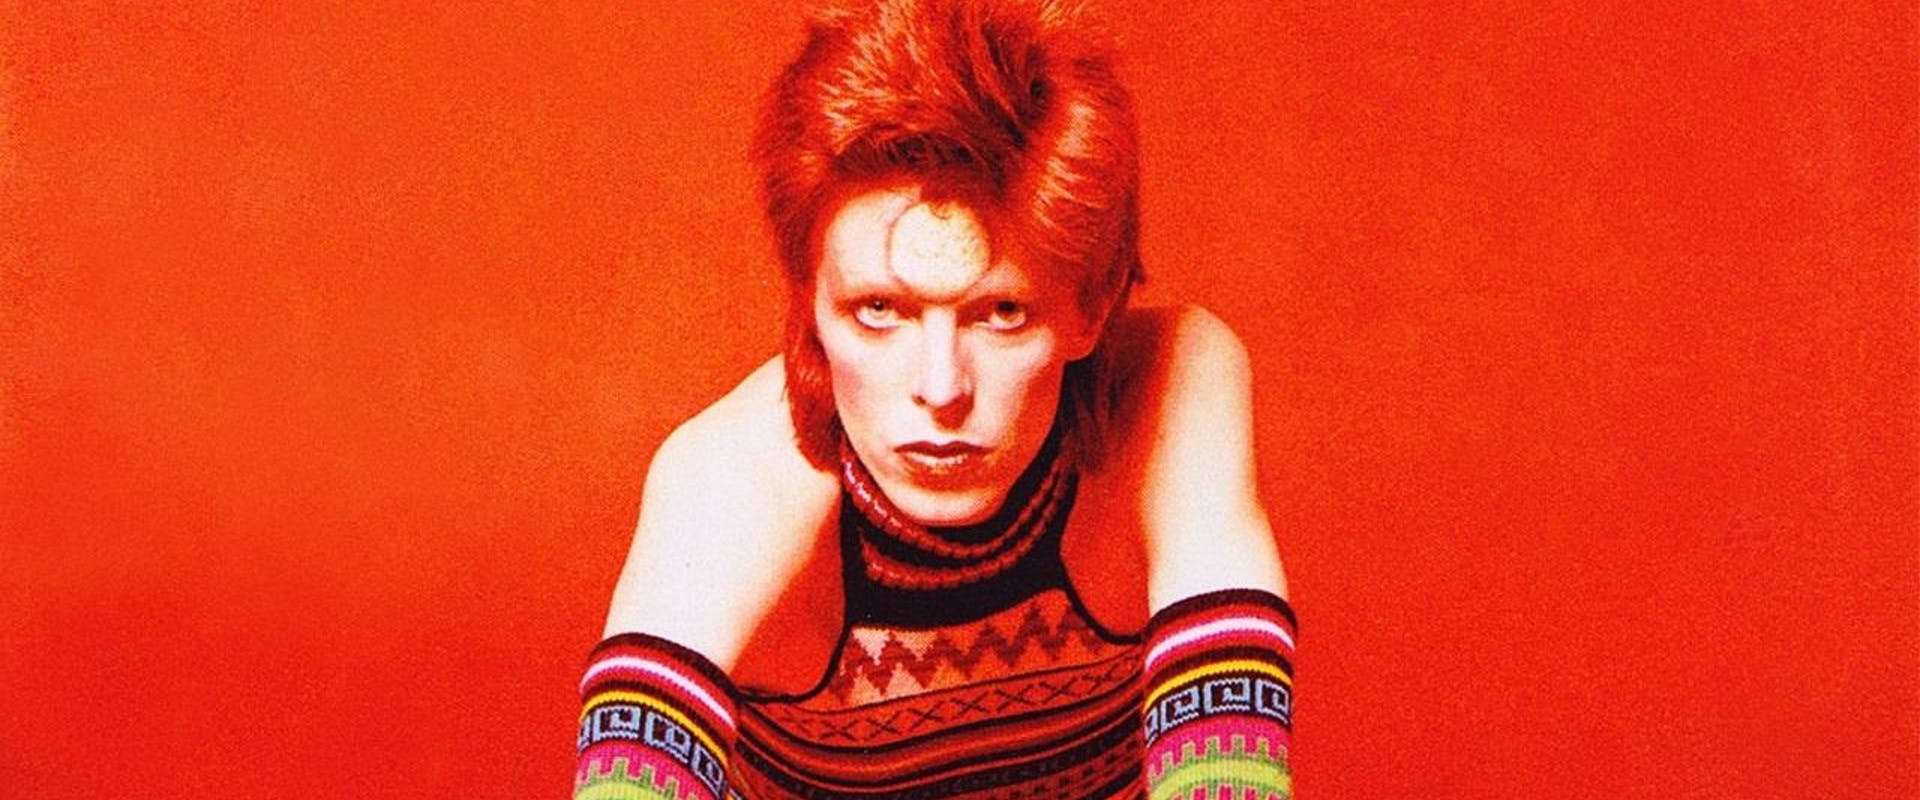 4 David Bowie Style Staples Influencing 2021 Fashion — David Bowie Makeup Eyes Fashion Trends